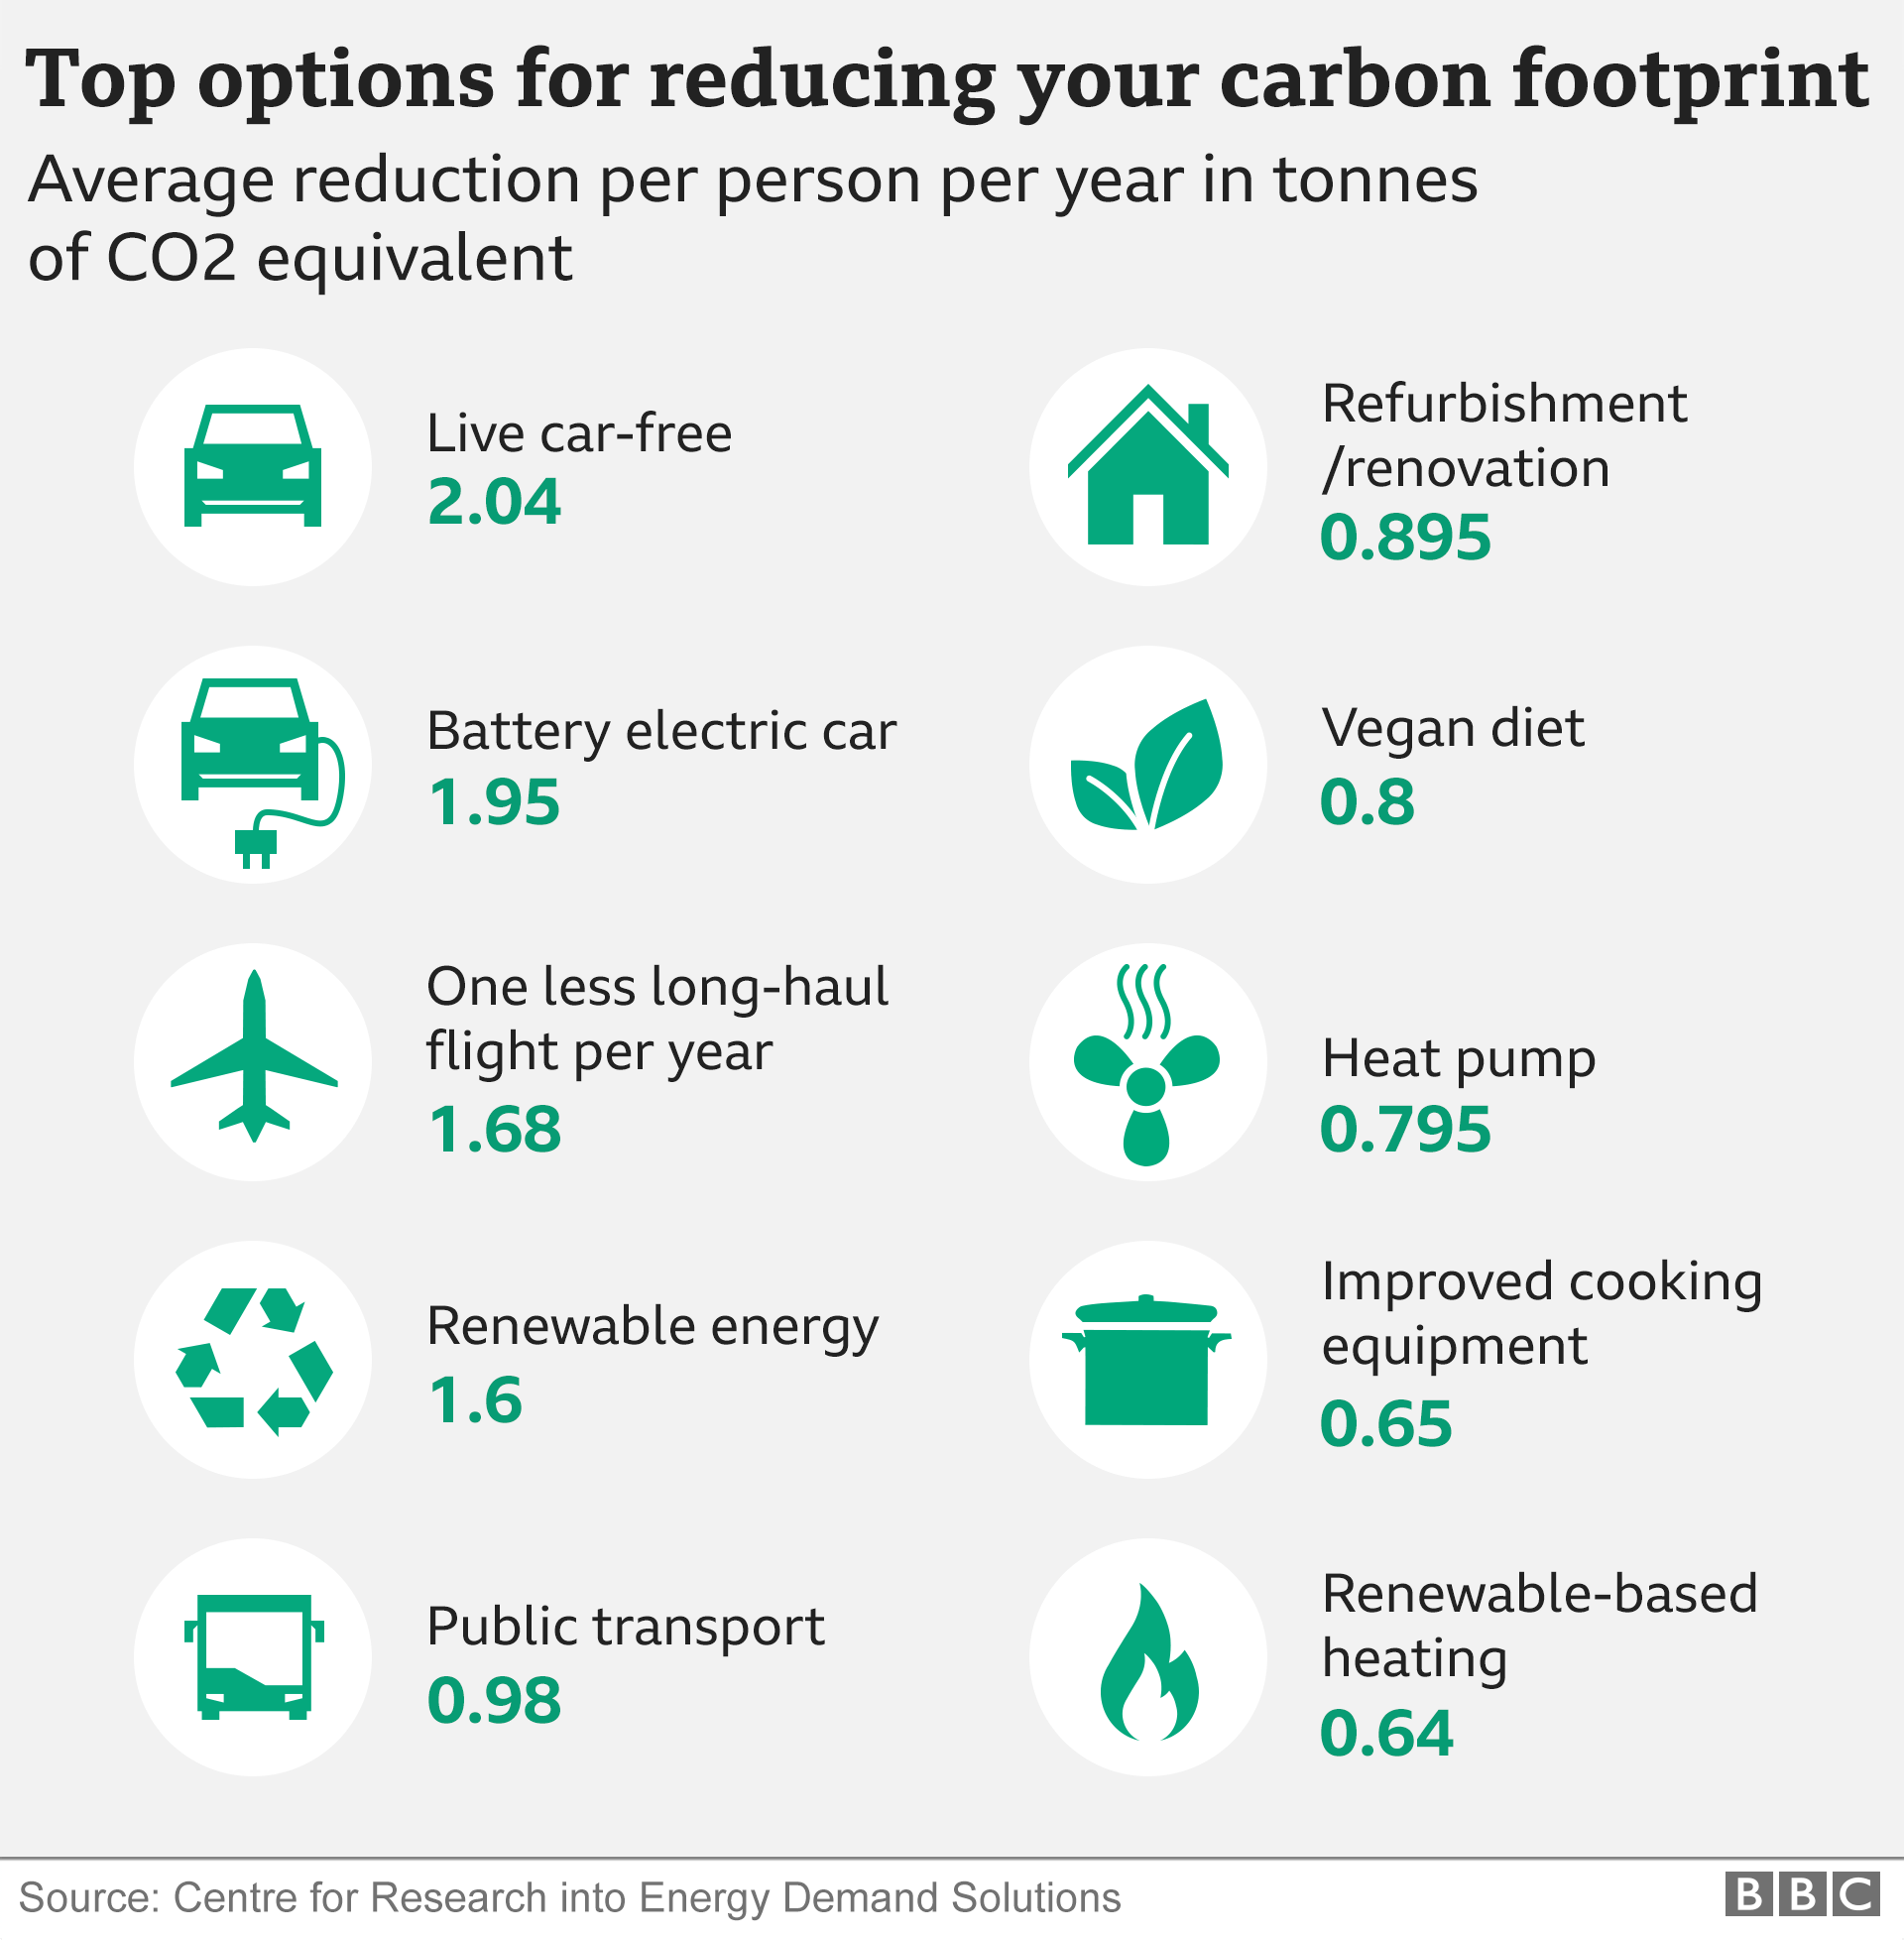 Climate change: Top 10 tips to reduce carbon footprint revealed - BBC News